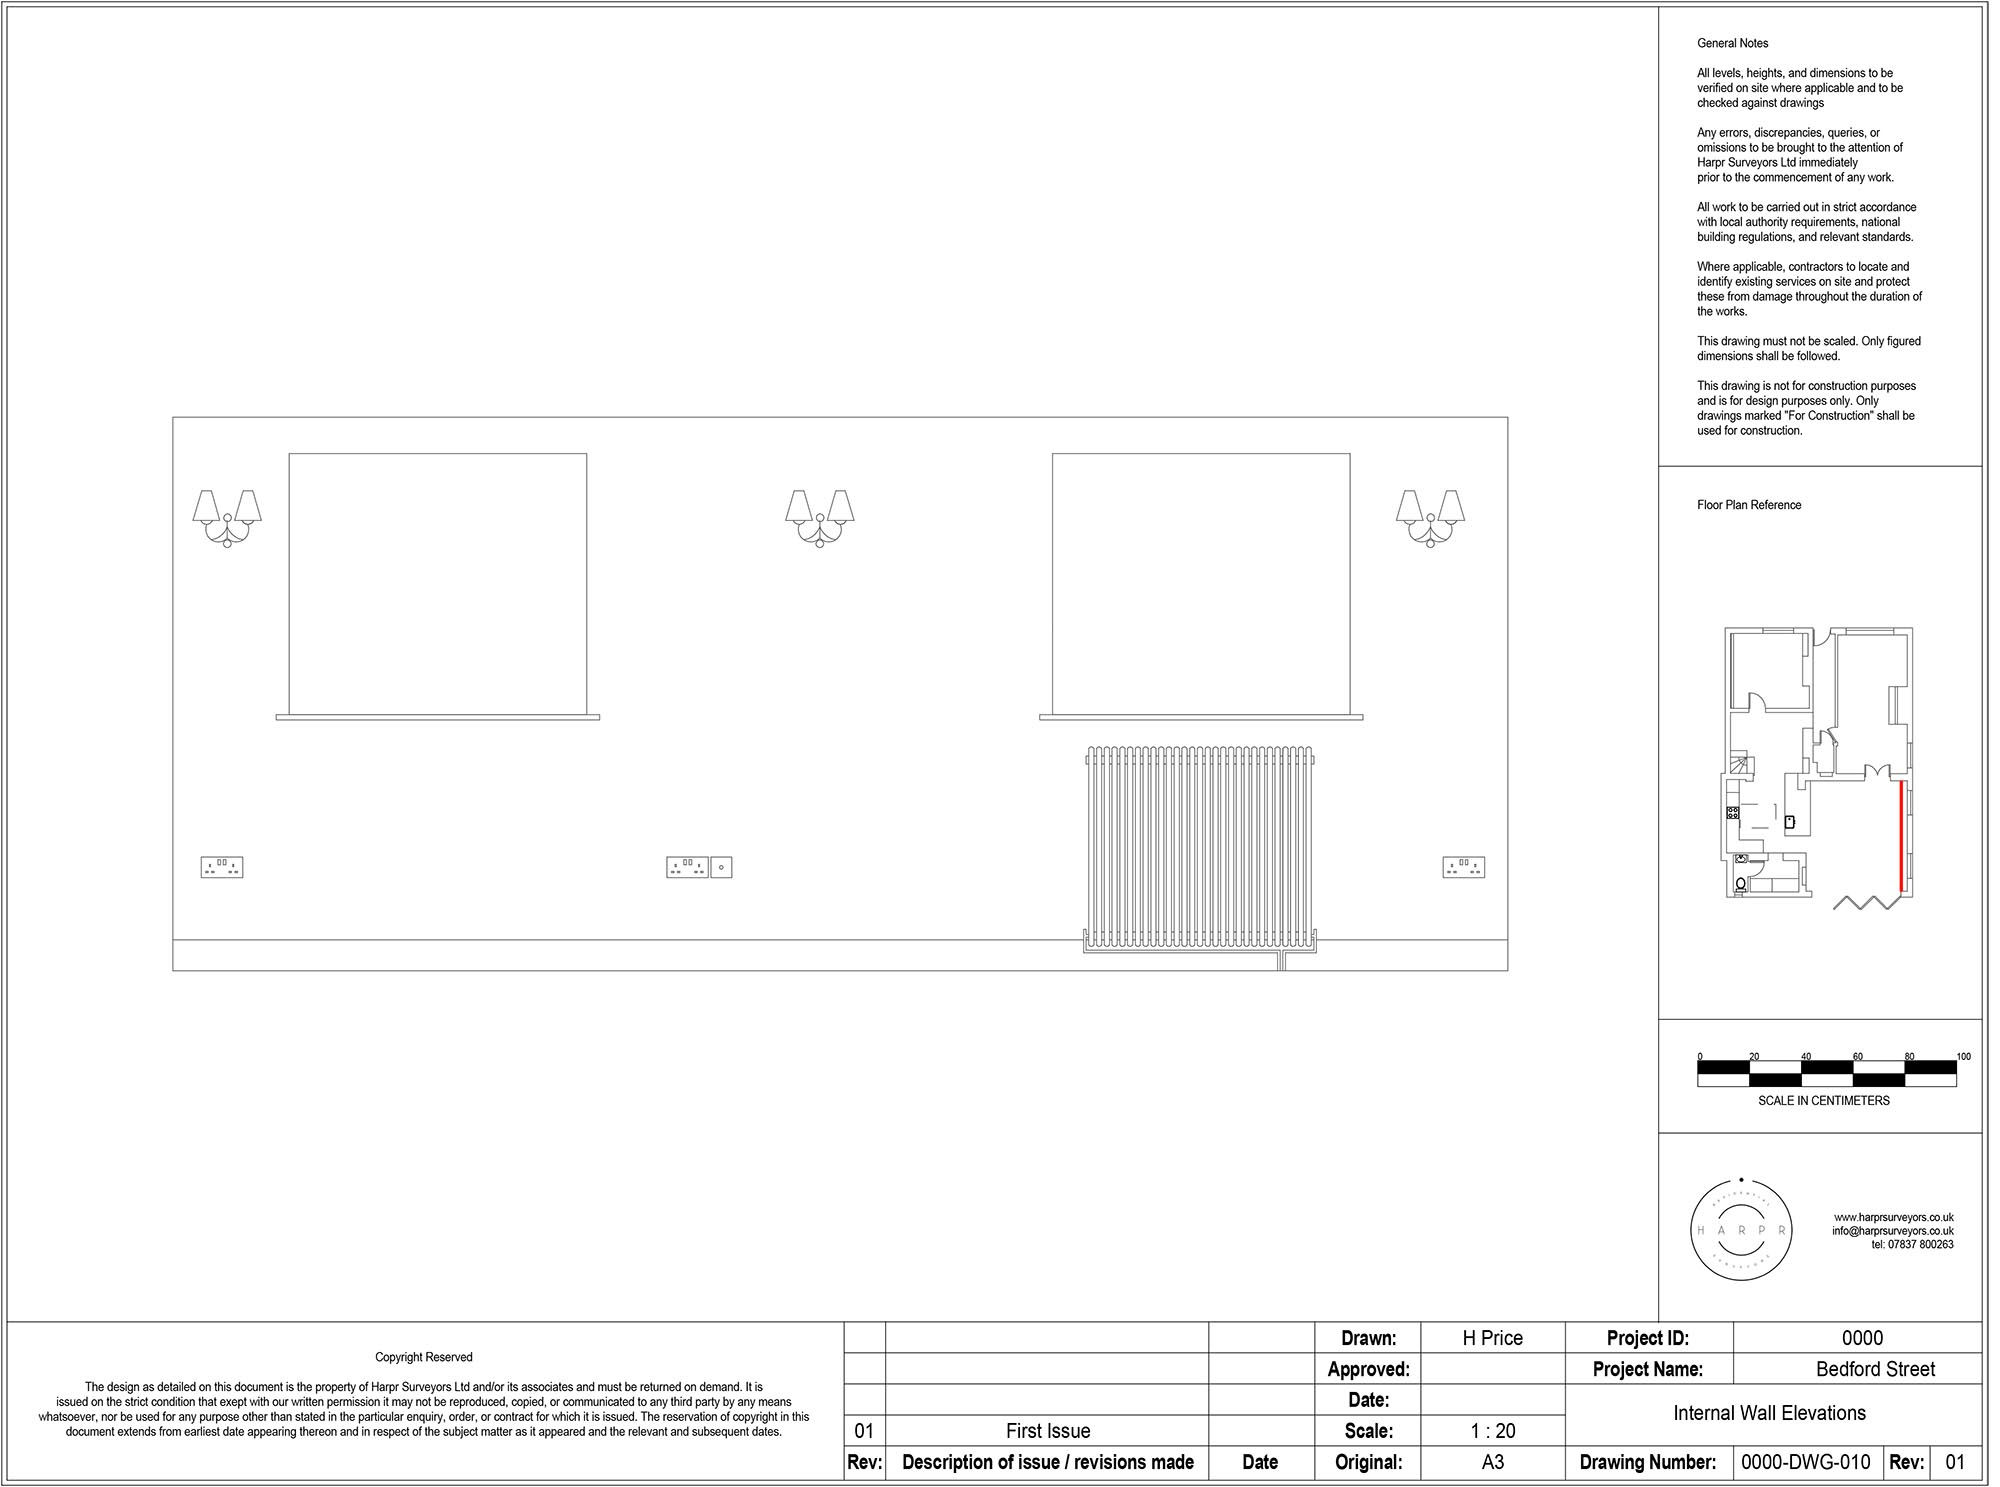 Bedford Street Hitchin Internal Wall Elevation Drawing